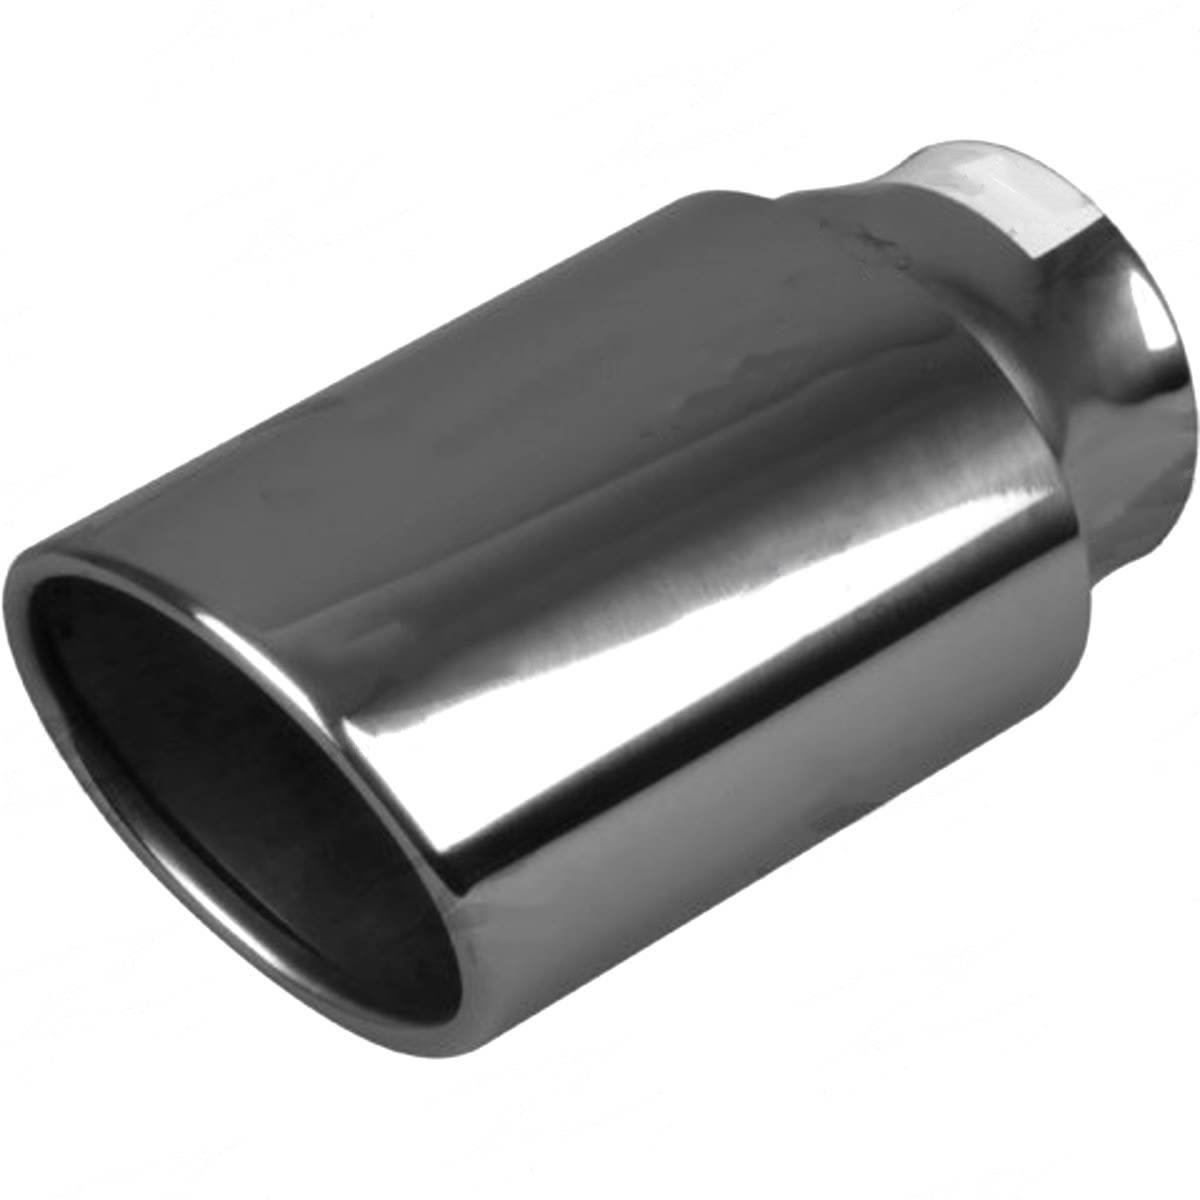 Redback Rb304 Tips Oval to suit Holden Statesman (01/1990 - 1994)